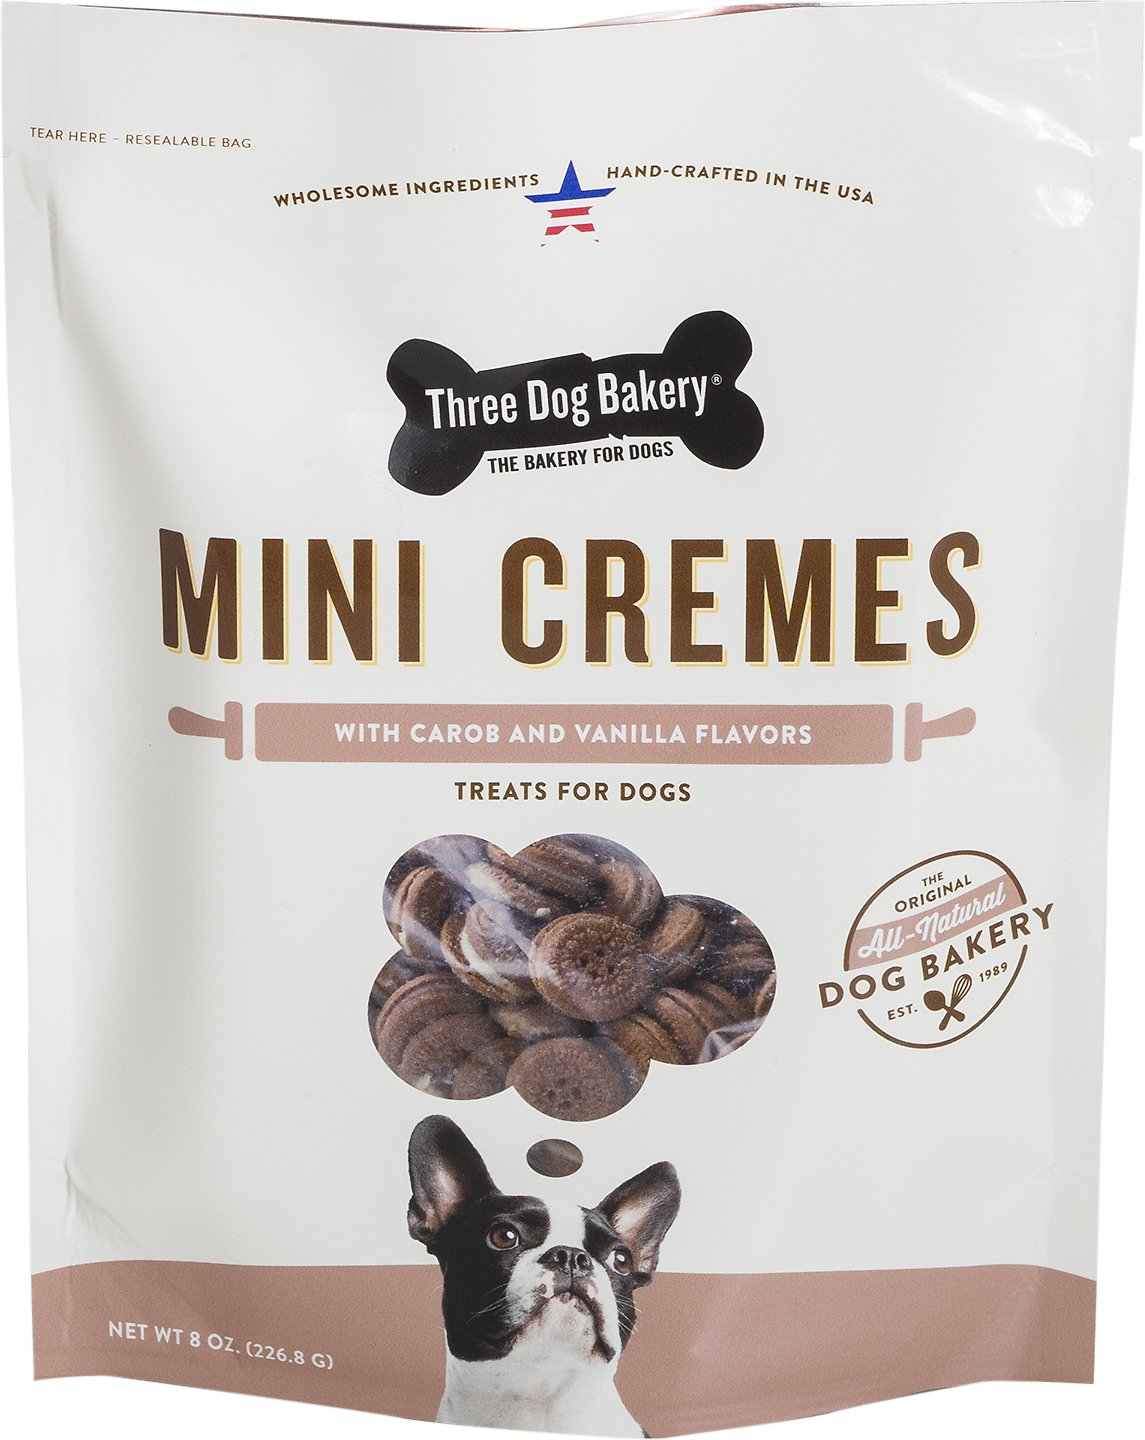 Three Dog Bakery Mini Classic Cremes Carob Cookies with Natural Vanilla Flavor Filling Packaged Everyday Treats, 8-oz bag Weights: 9.28 ounces